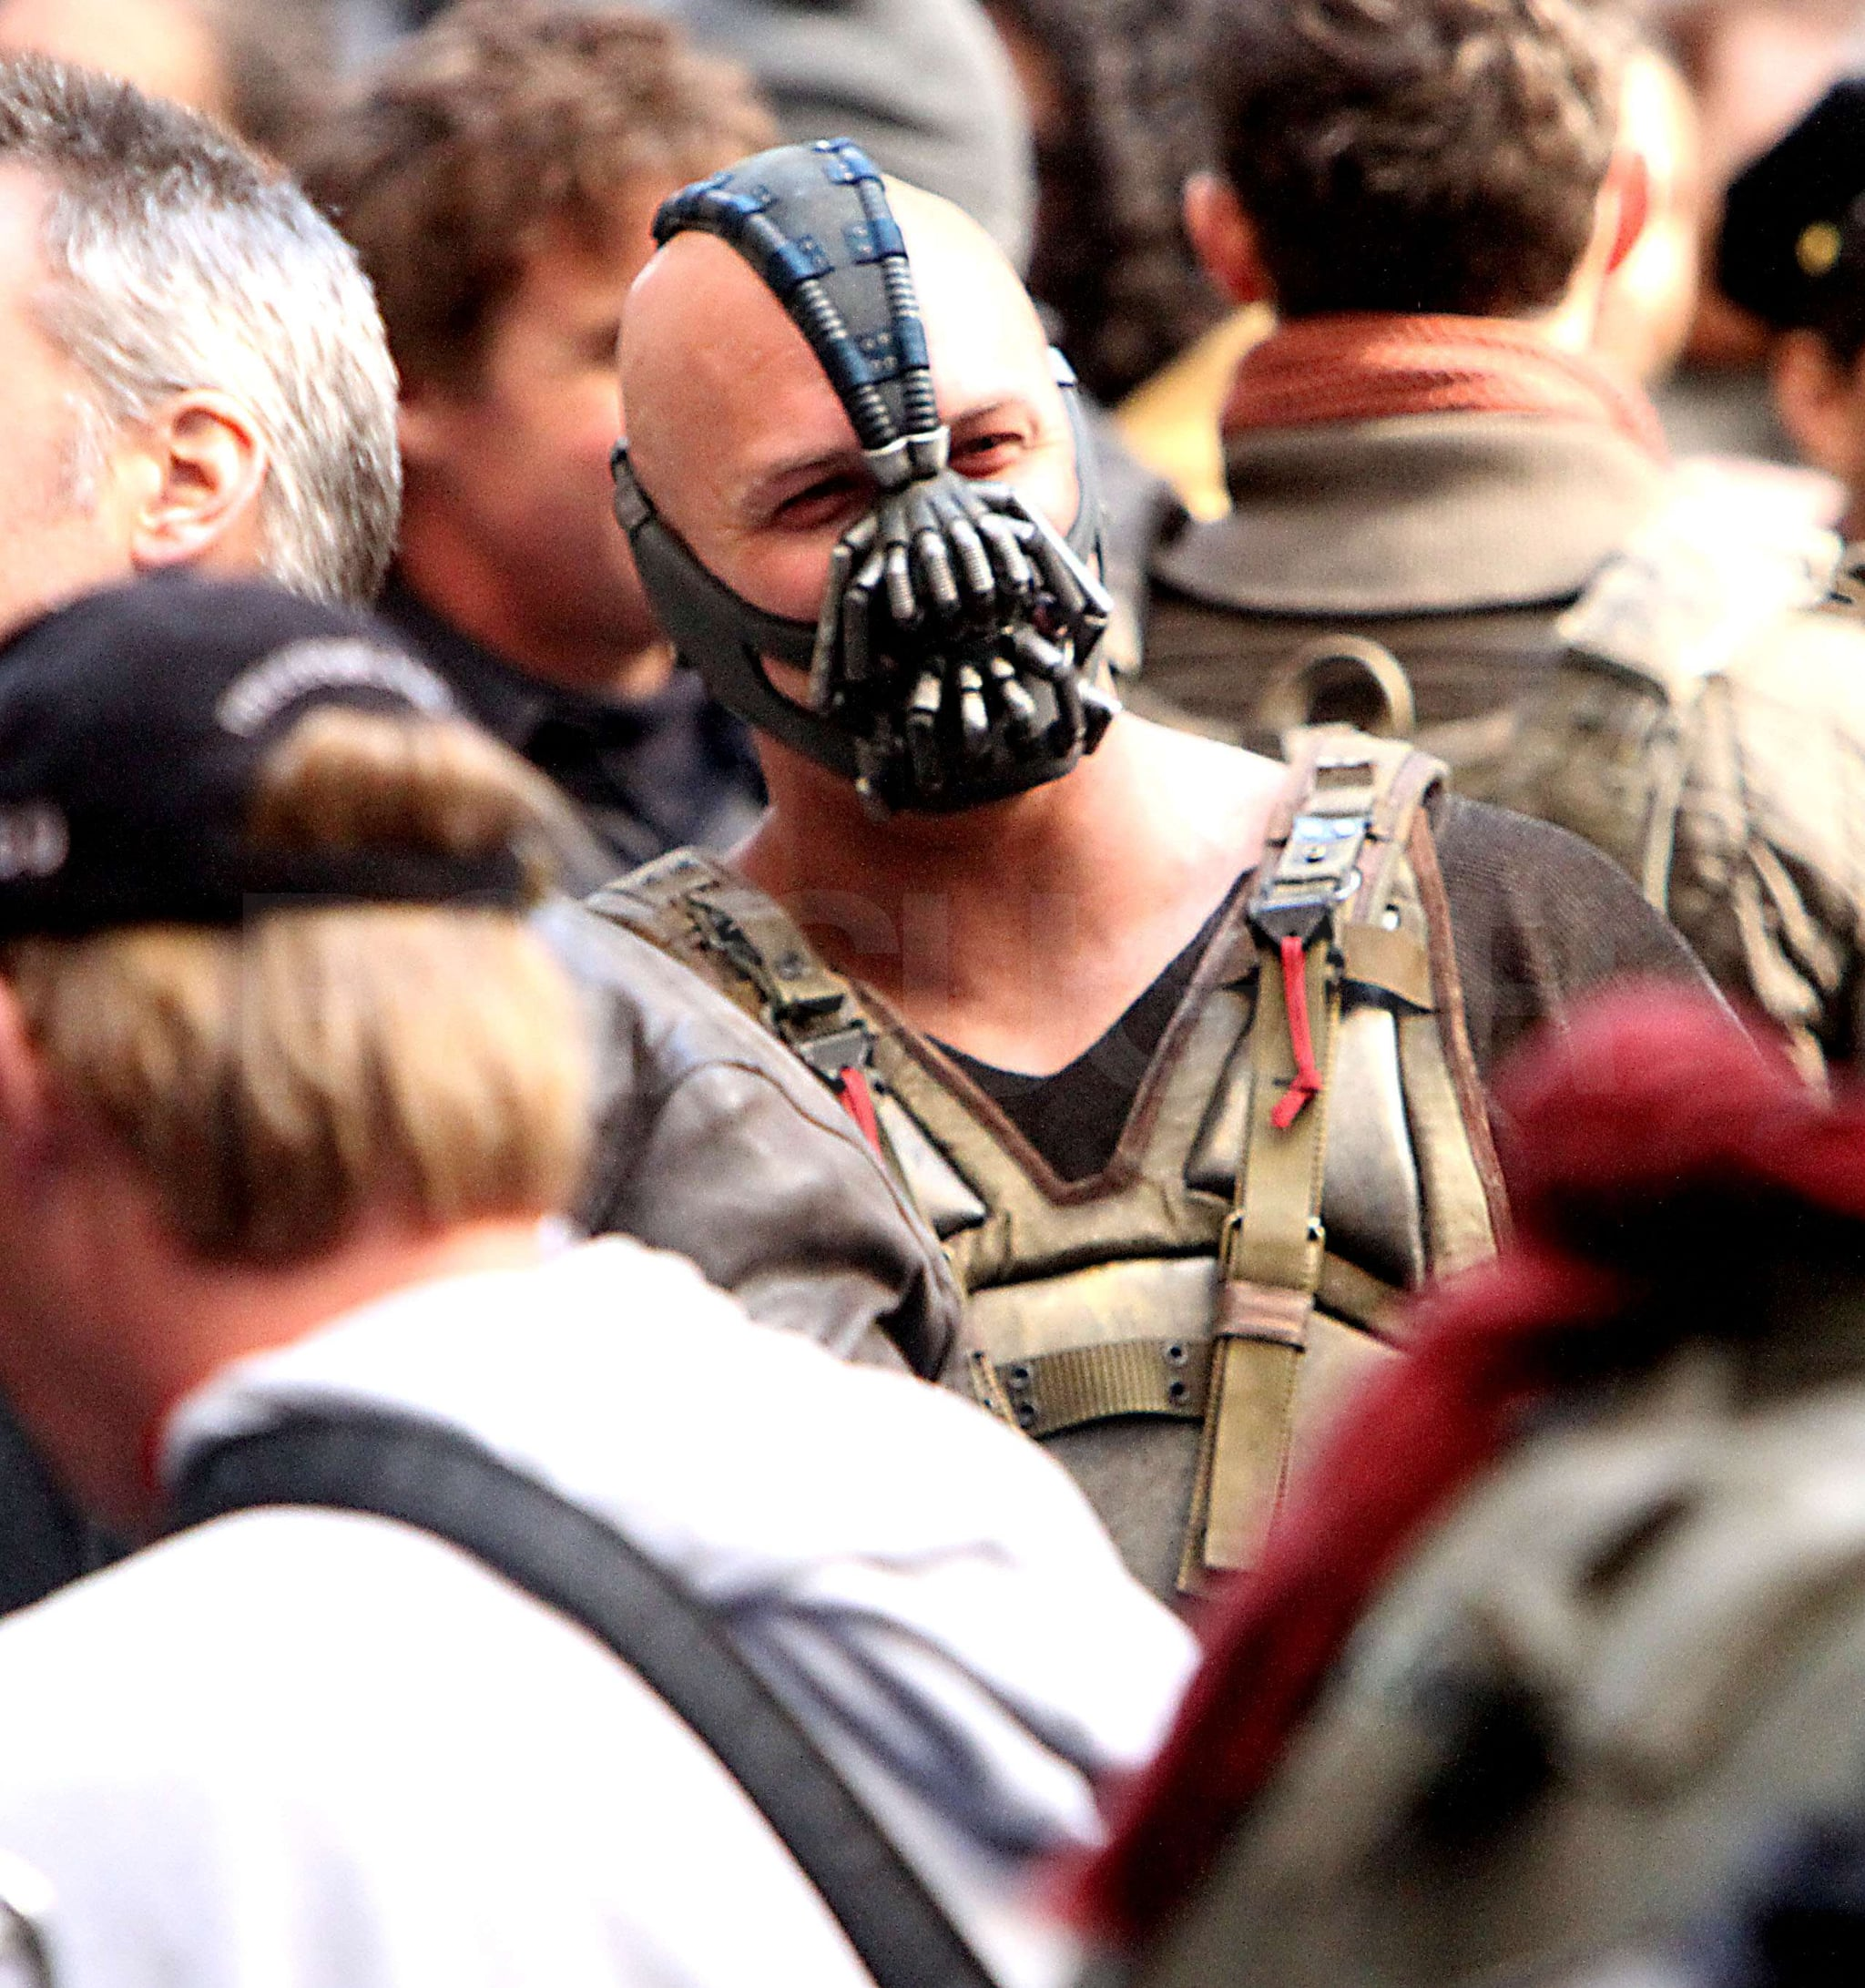 Tom Hardy Wore A Terrifying Face Mask As Bane Anne Christian And Tom Spend Their Days On The Dark Knight Rises Popsugar Celebrity Photo 4